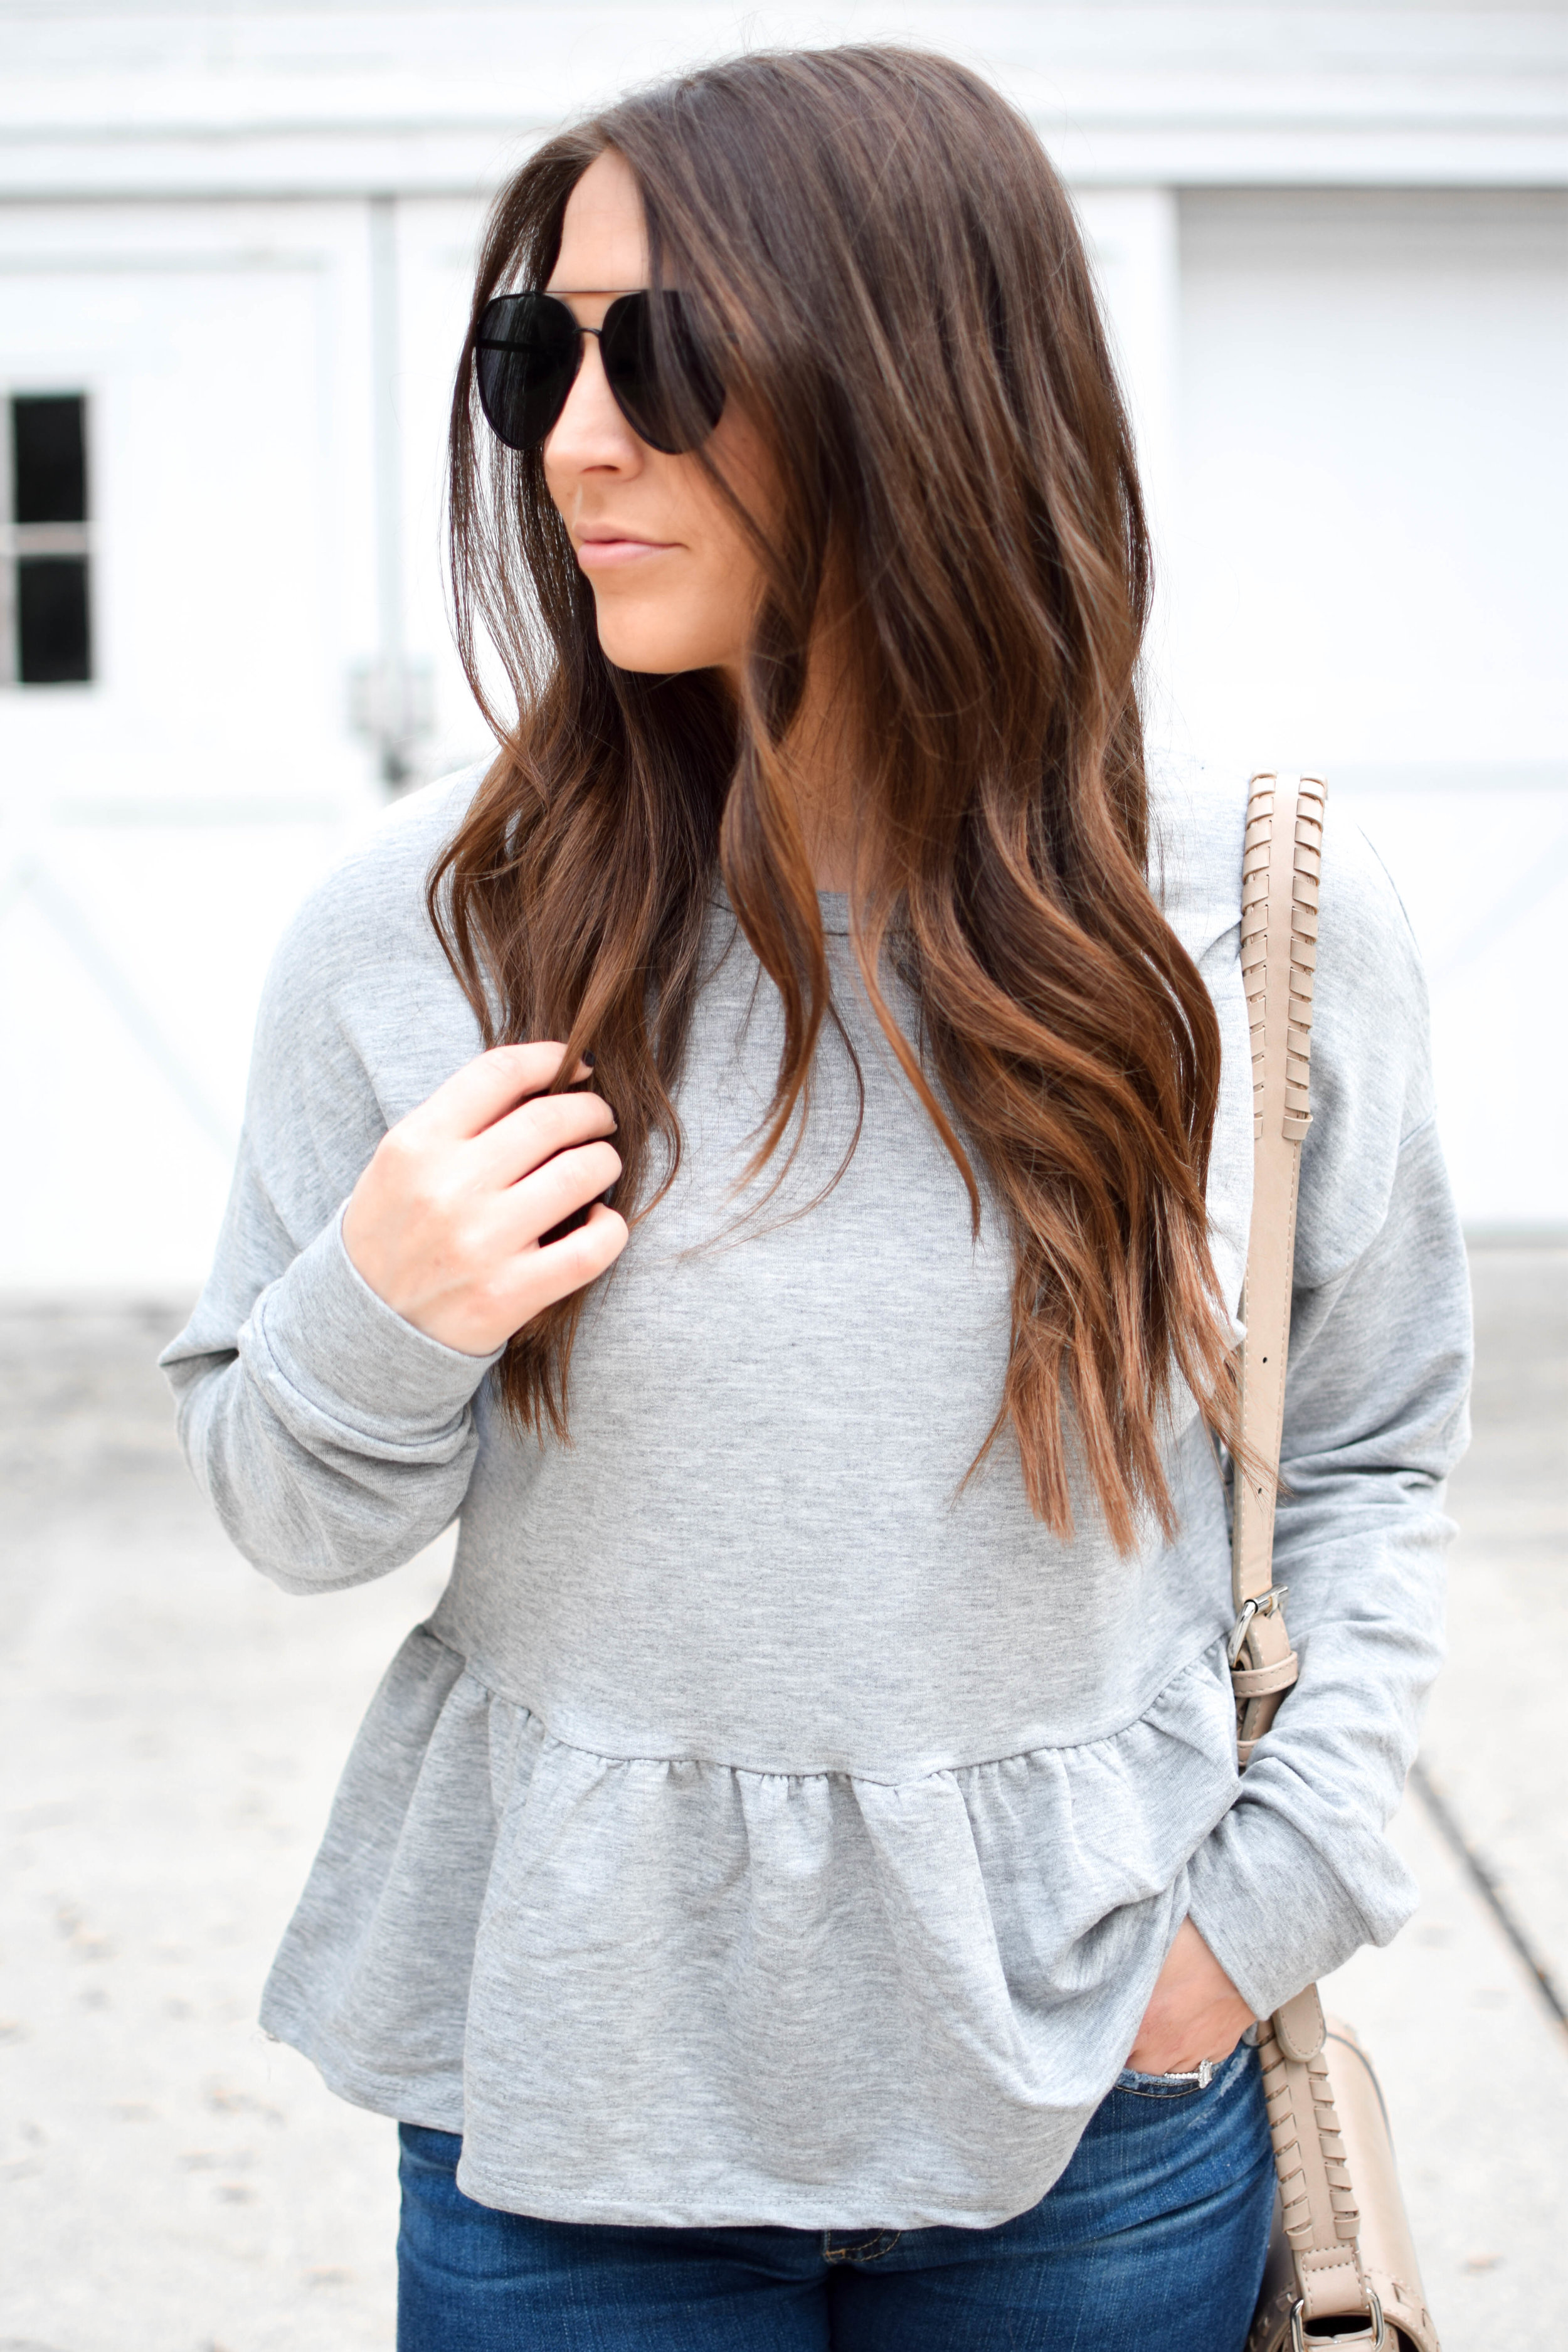 fall outfit idea / fall outfit inspiration / fall fashion / grey peplum sweatshirt / casual outfit for fall